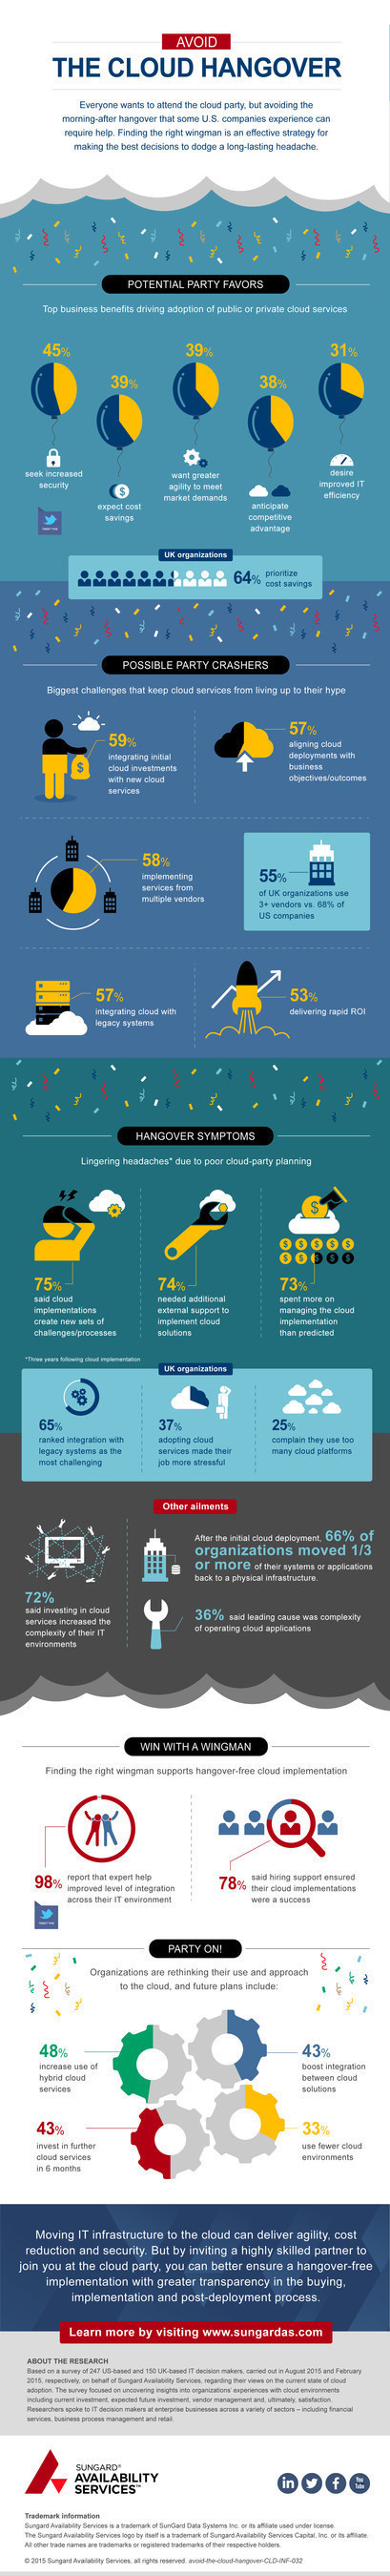 Complexity of Cloud Implementations Leave IT Leaders with a Headache